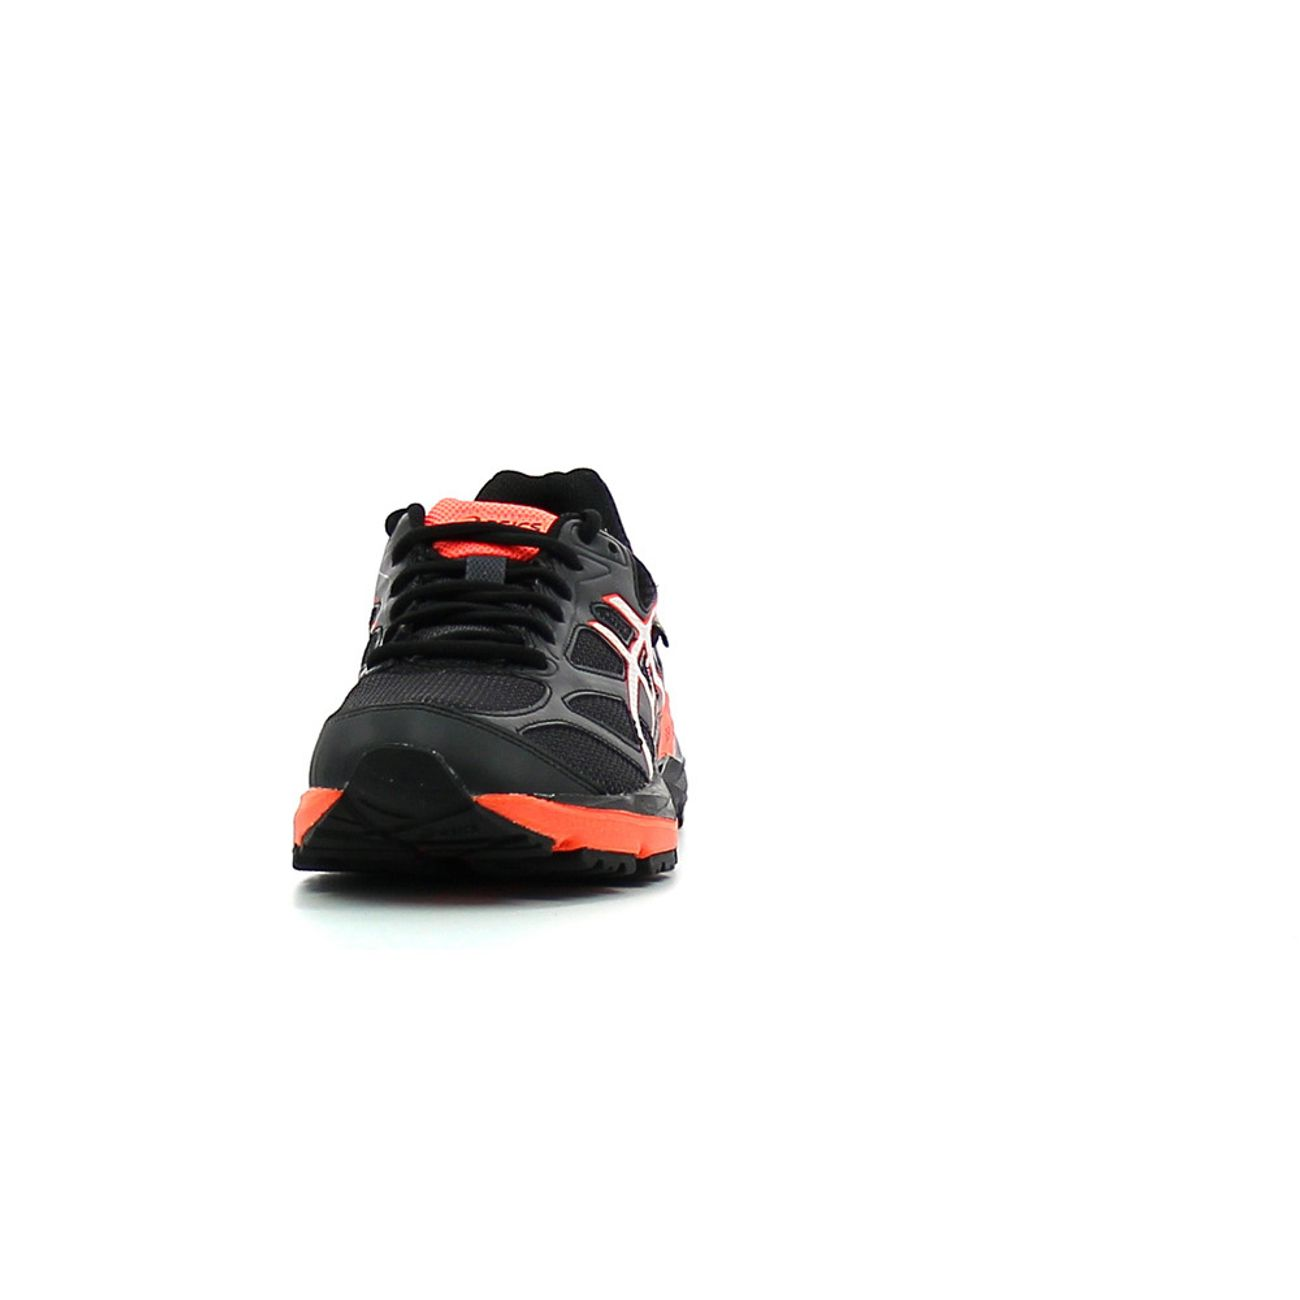 Pulse De Chaussures Asics Gtx Gel 8 Running 4Iq6WqA7